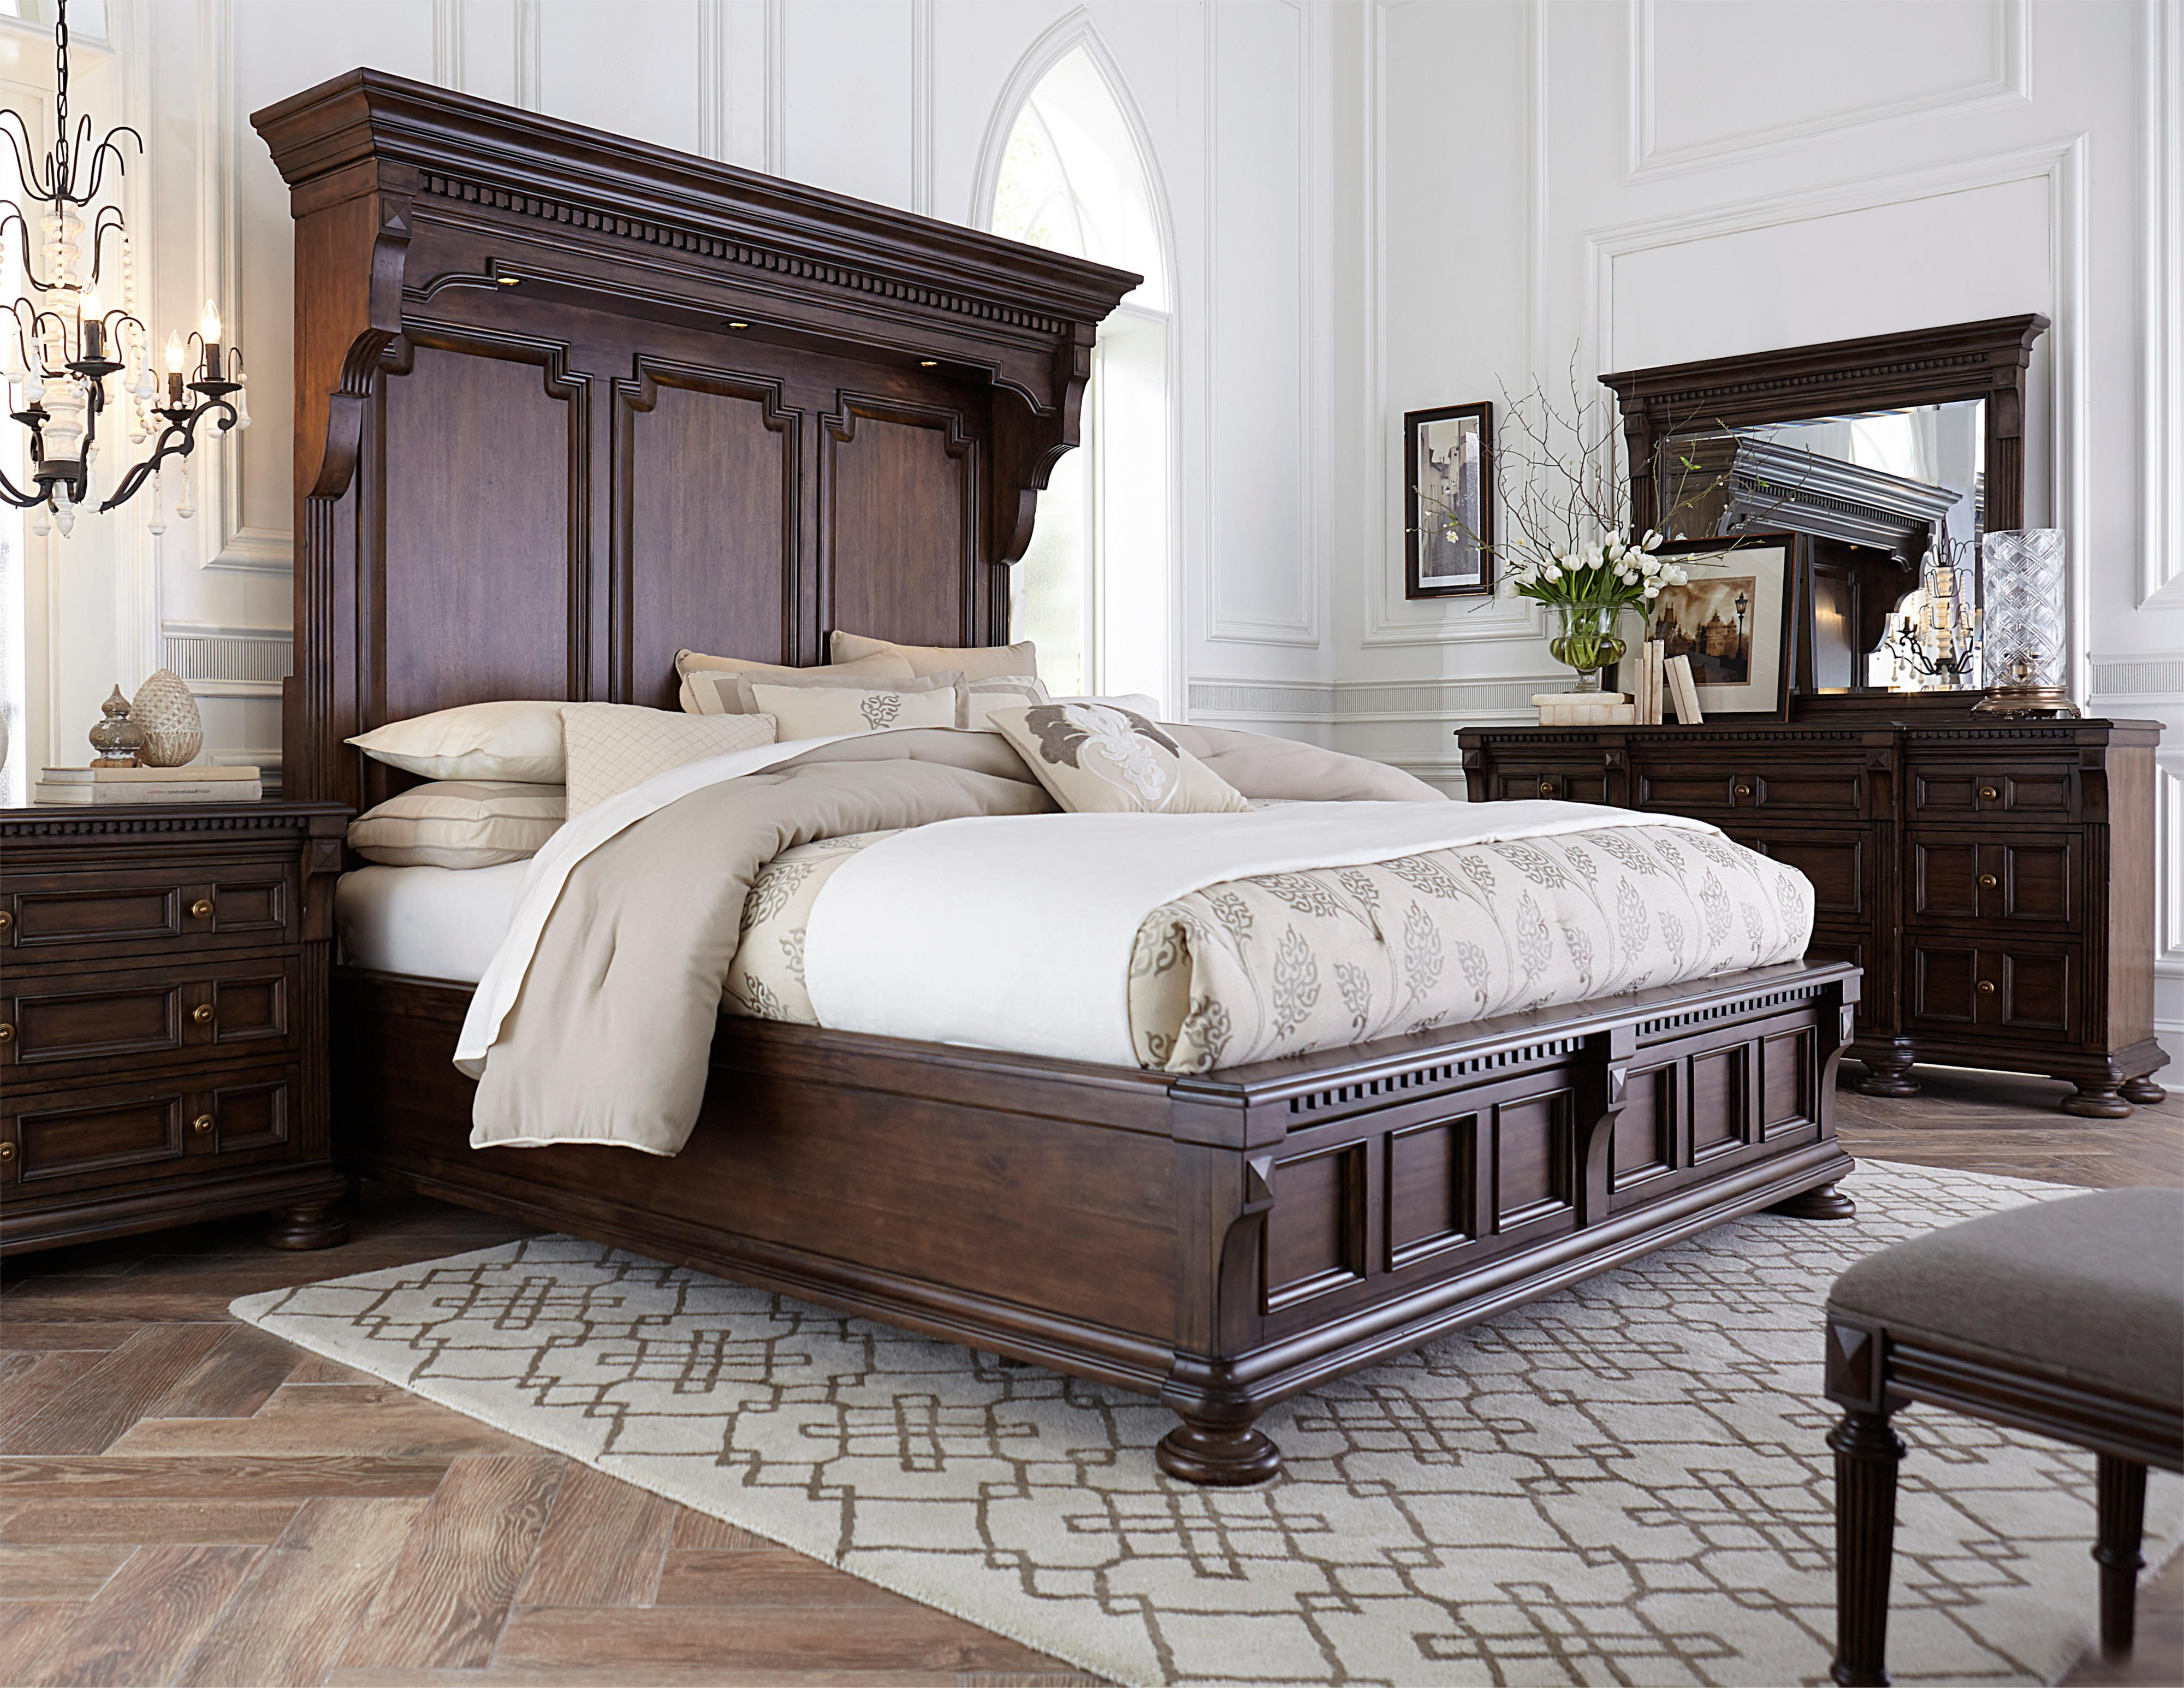 Broyhill Furniture Lyla Queen Bedroom Group - Item Number: 4912 Q Bedroom Group 2